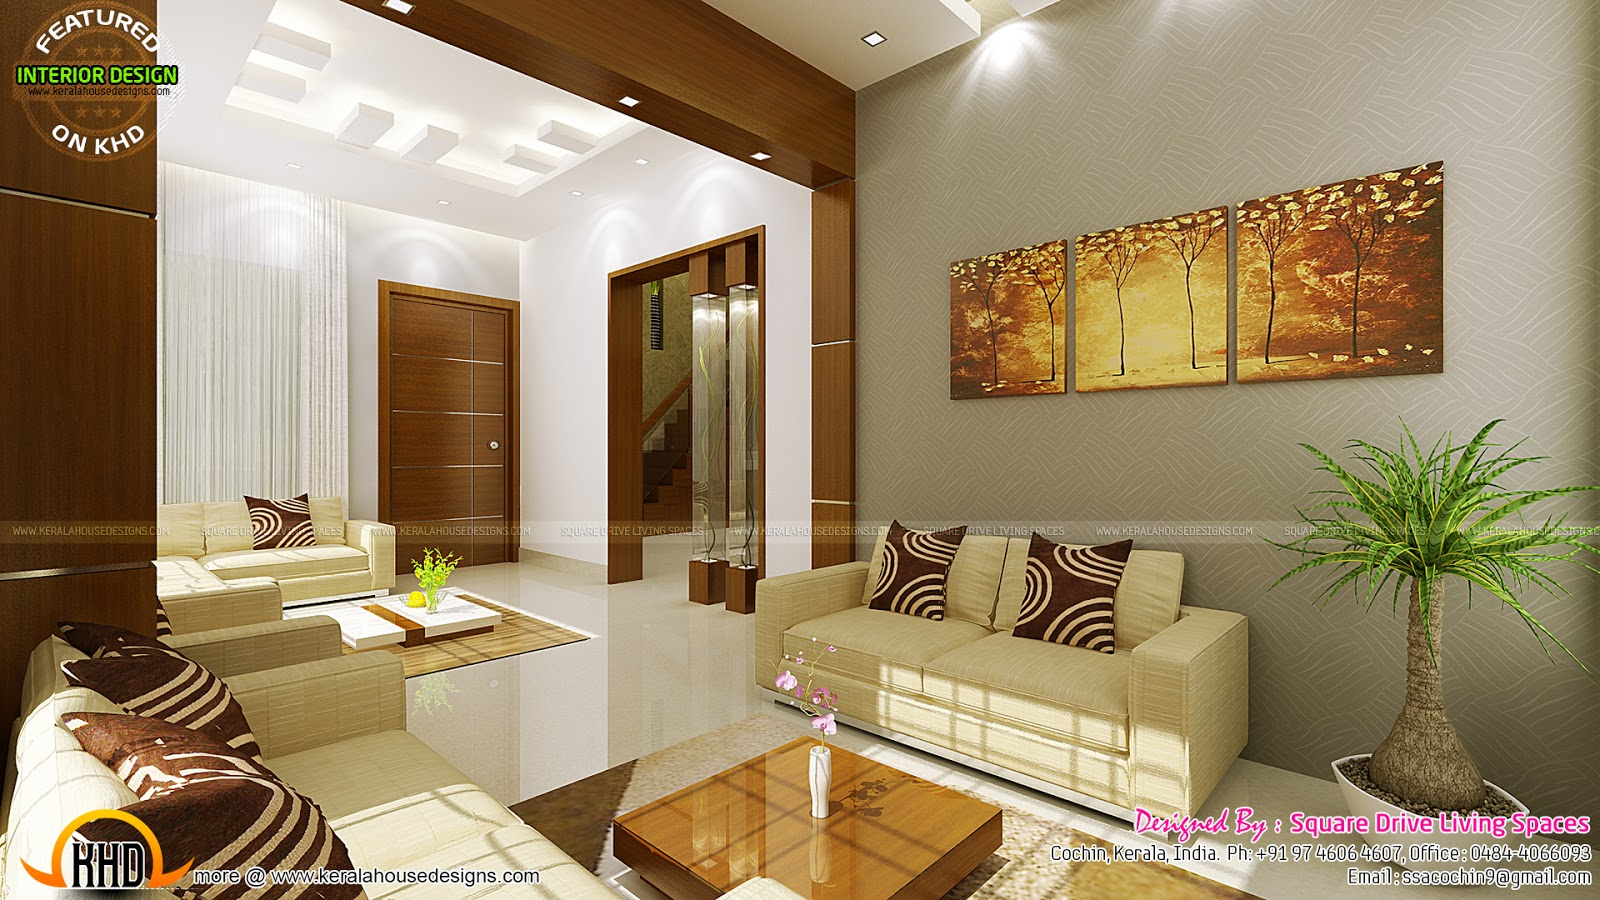 Contemporary kitchen dining and living room kerala home for Kerala home interior designs photos